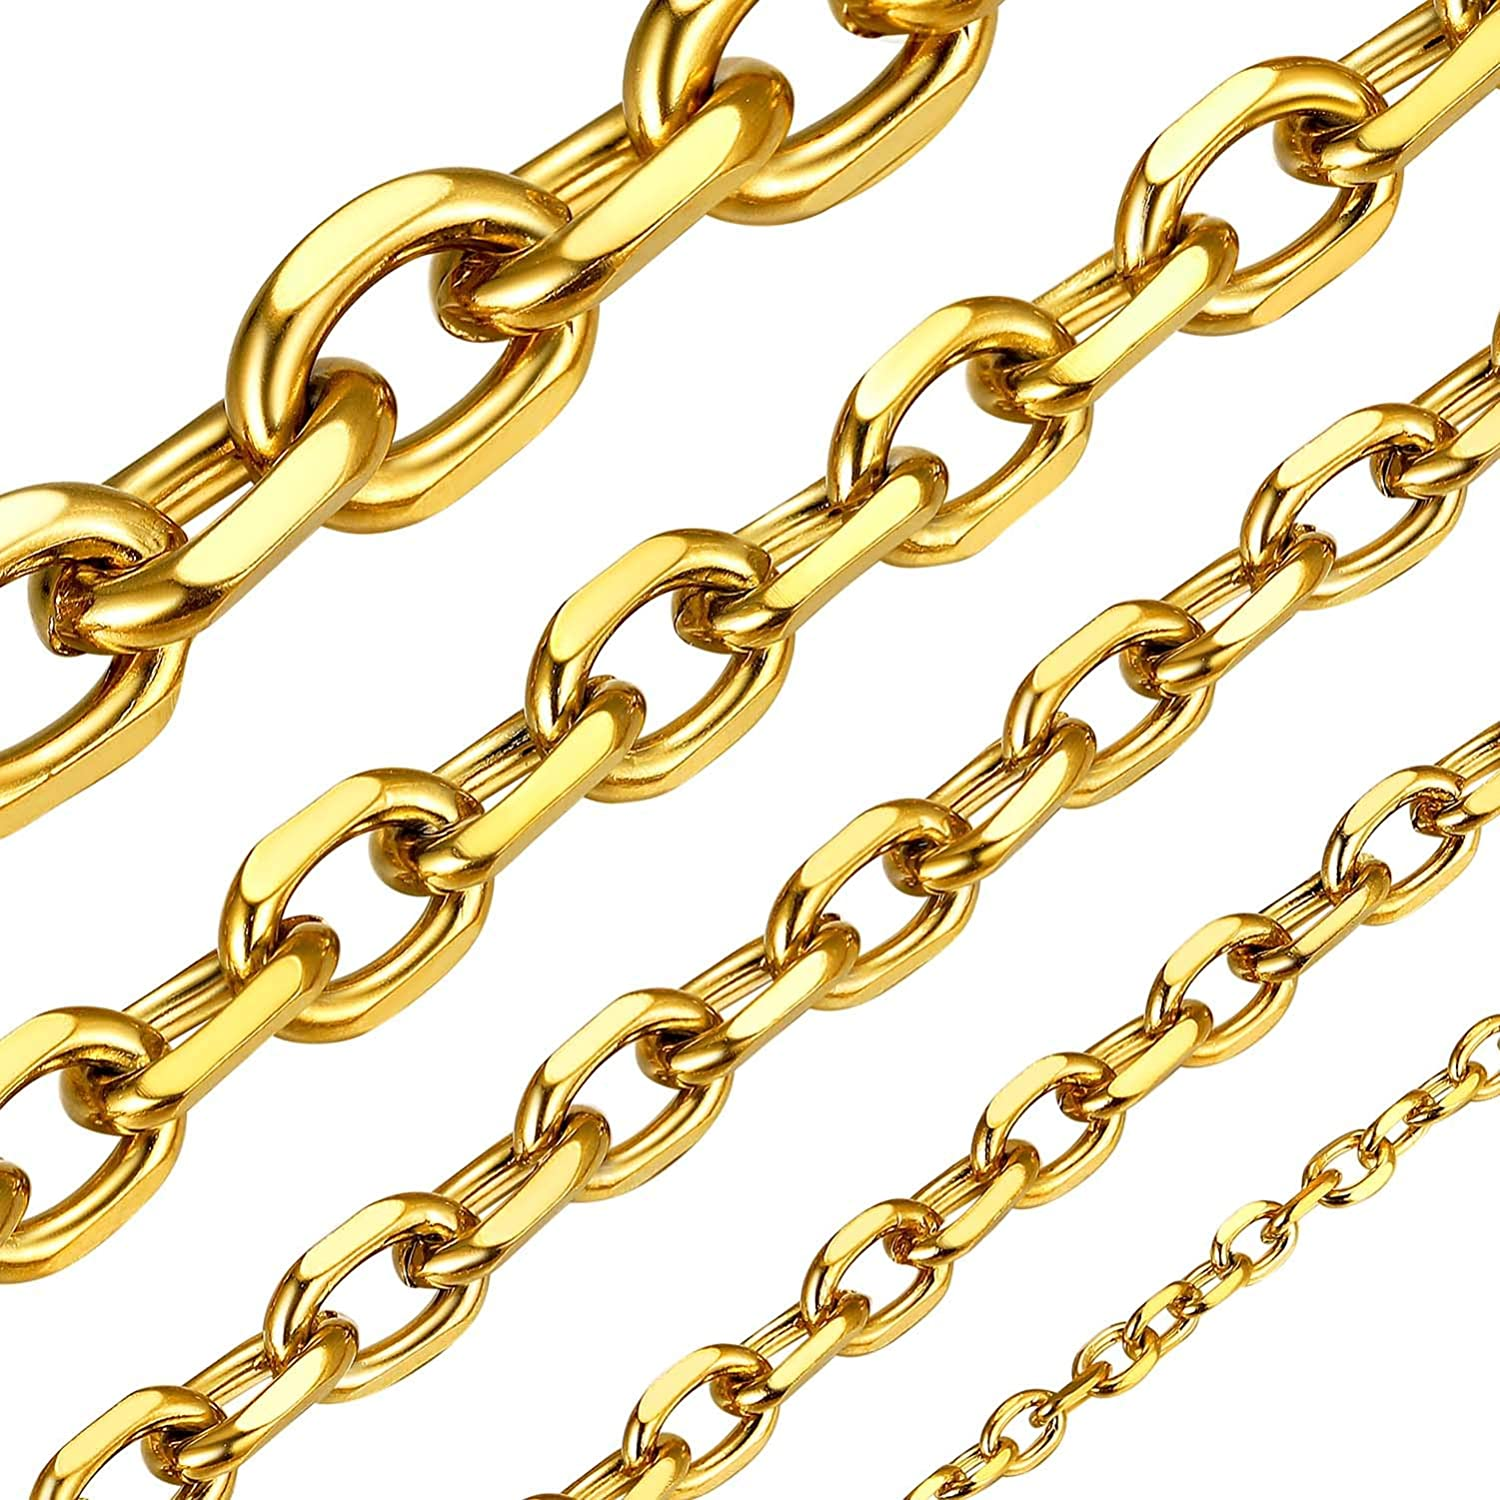 """ChainsHouse Men Women Chain 3MM/5MM/7MM/9MM/12MM Rolo Necklace, Stainless Steel/Black Gun Plated/18K Gold Plated Rolo Cable Link Necklace, 18"""" - 30"""""""